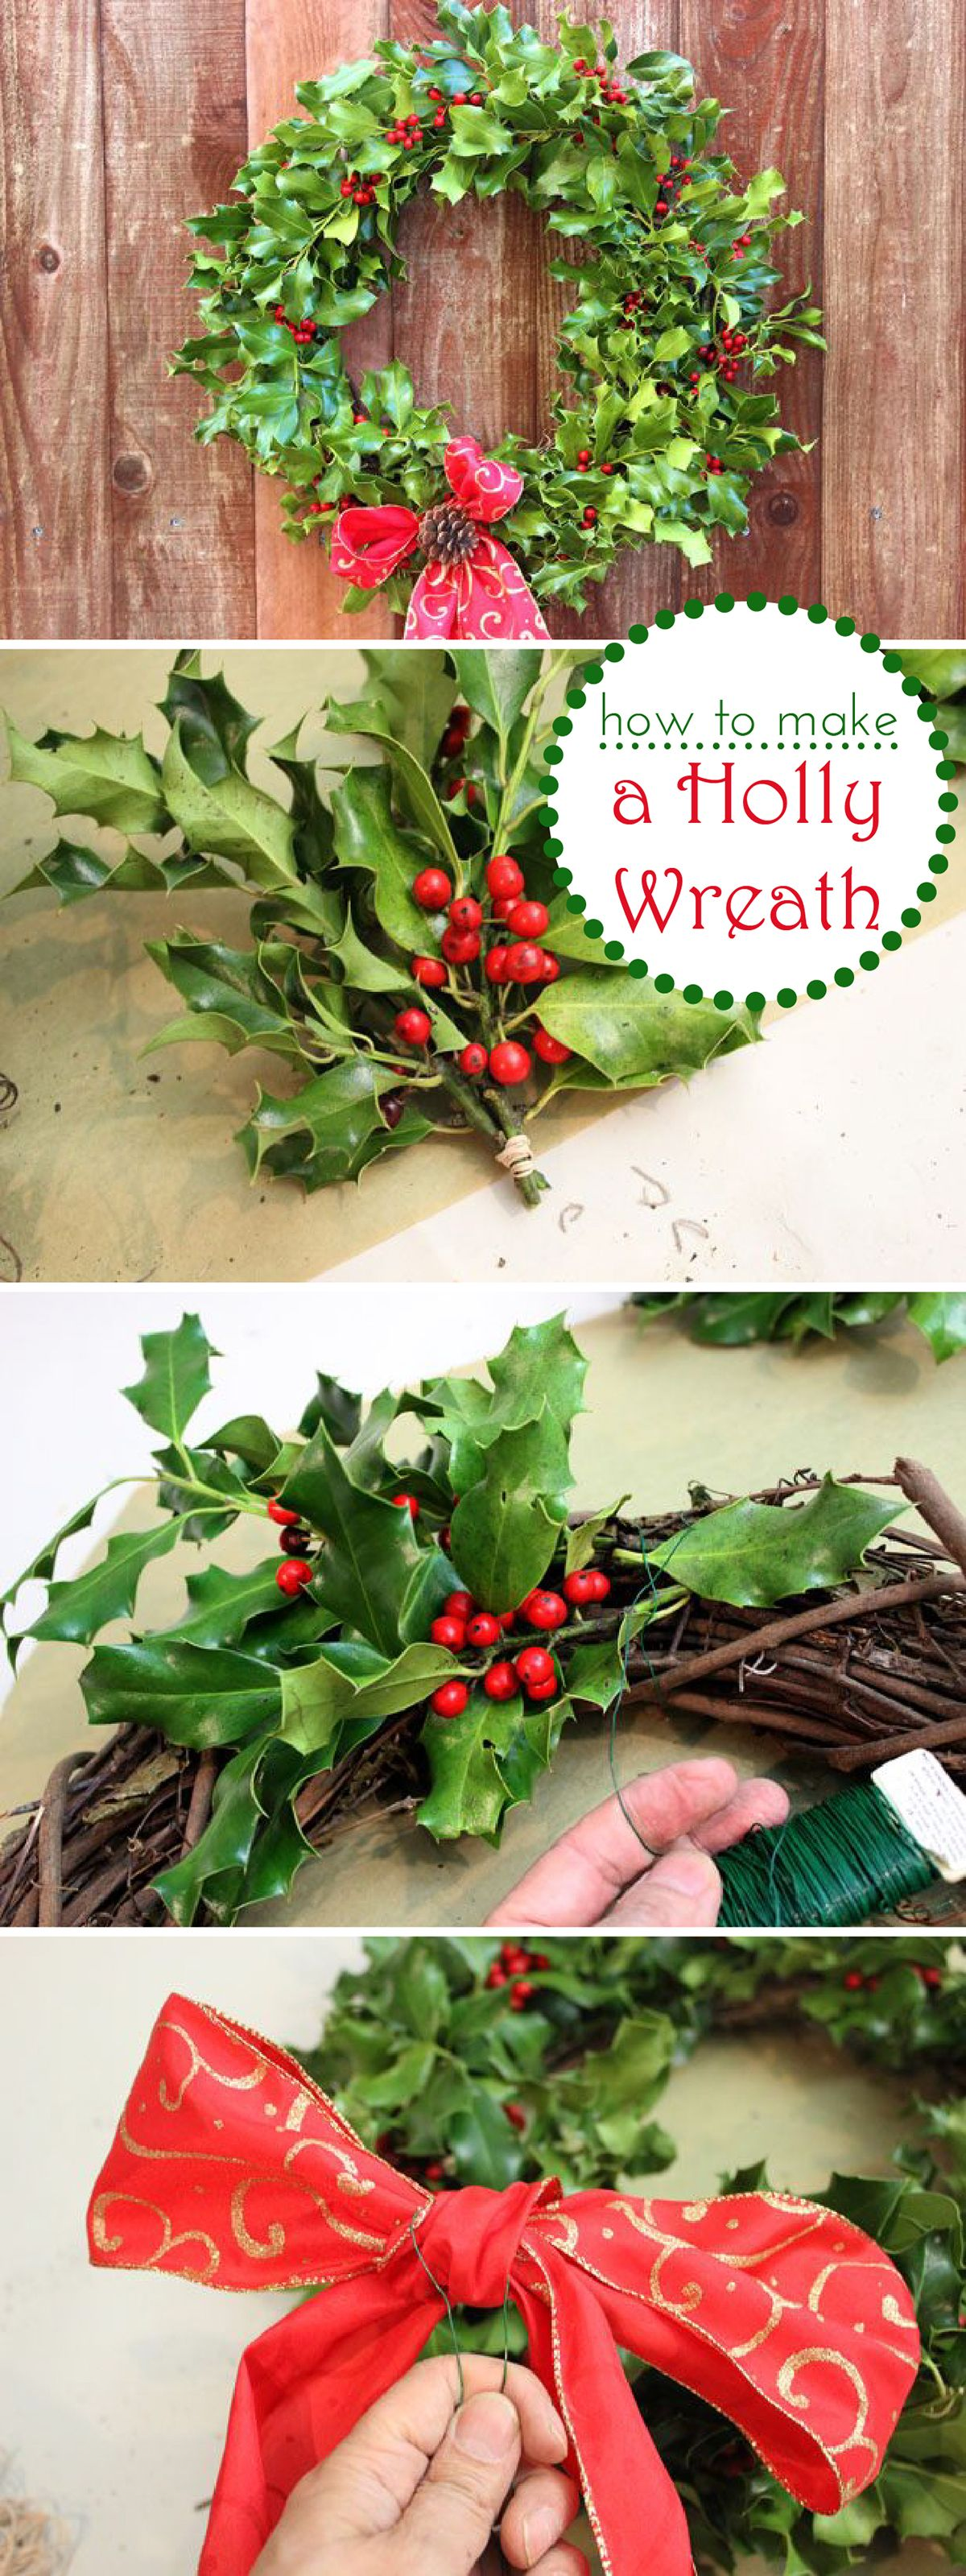 how to make a holly berry wreath